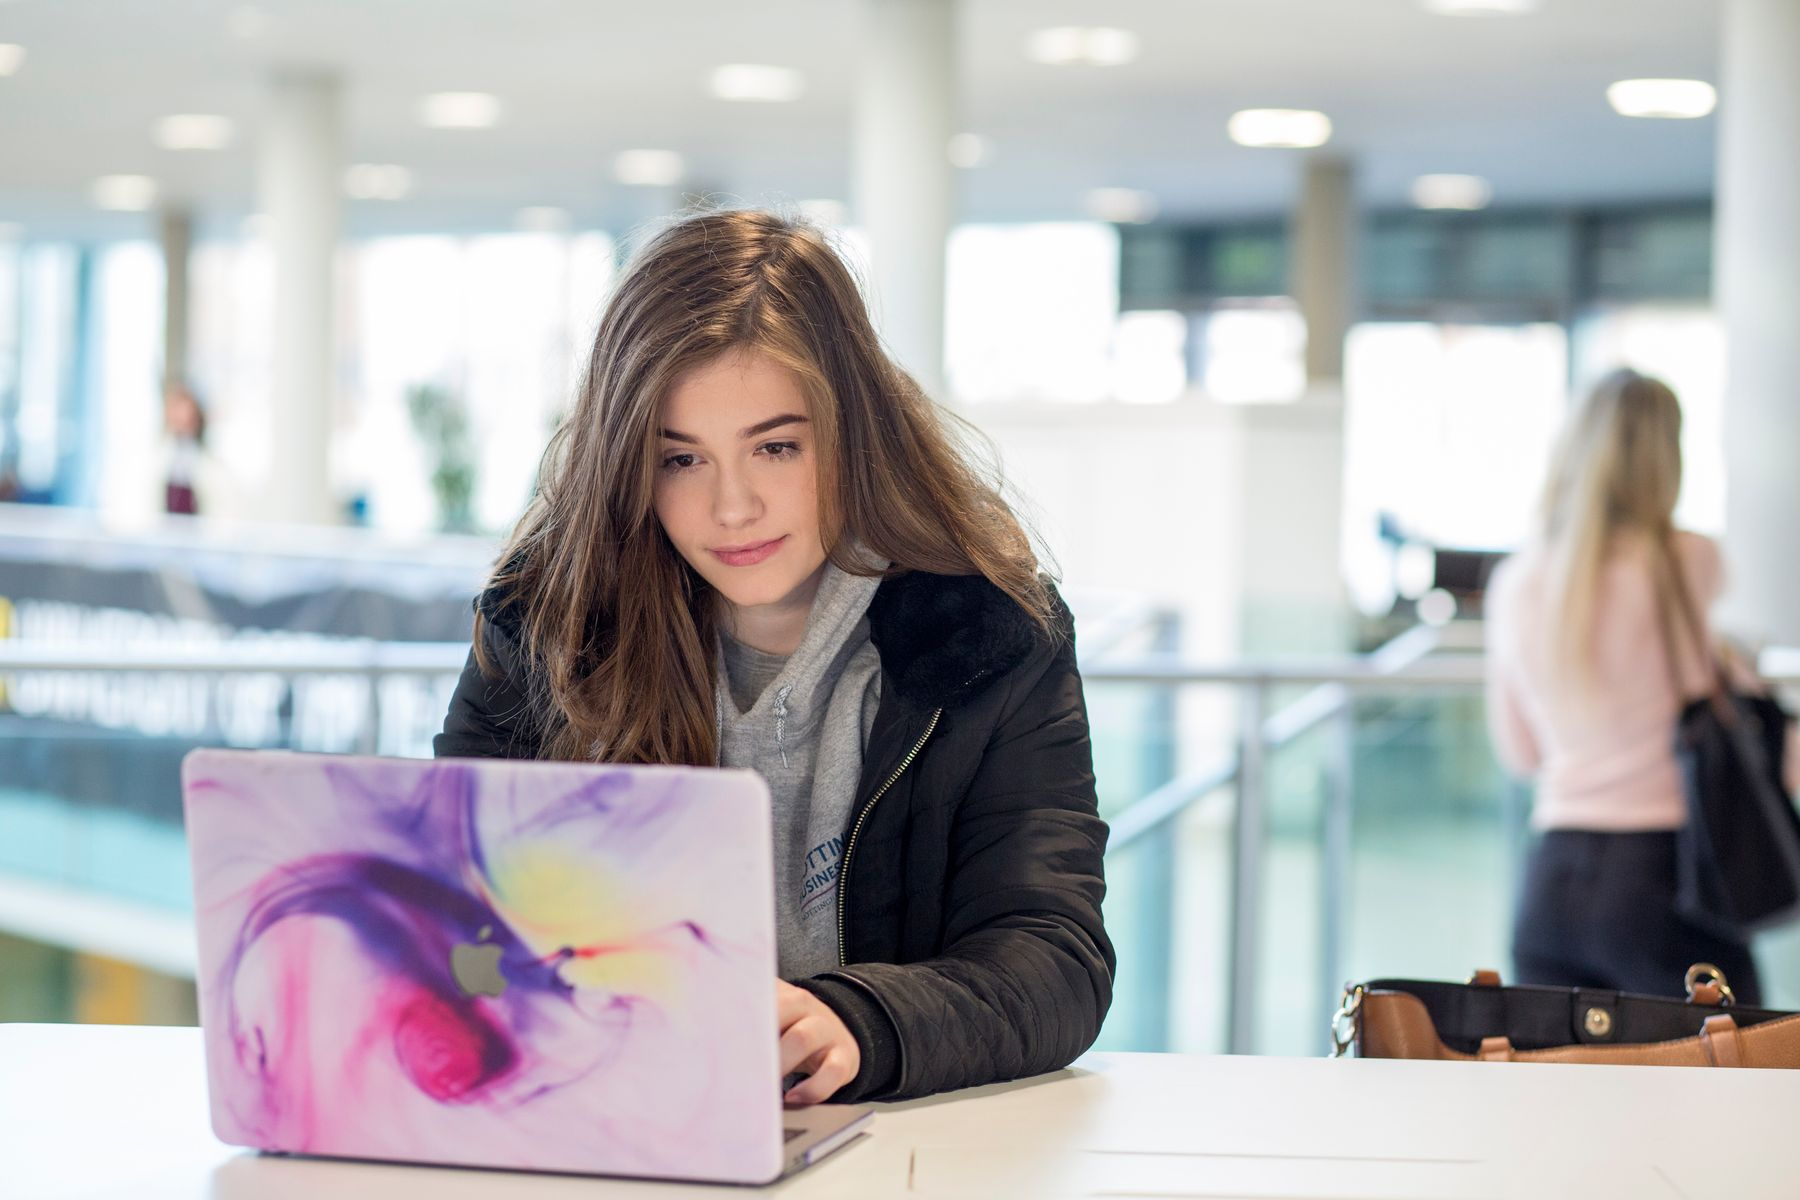 Female student at laptop